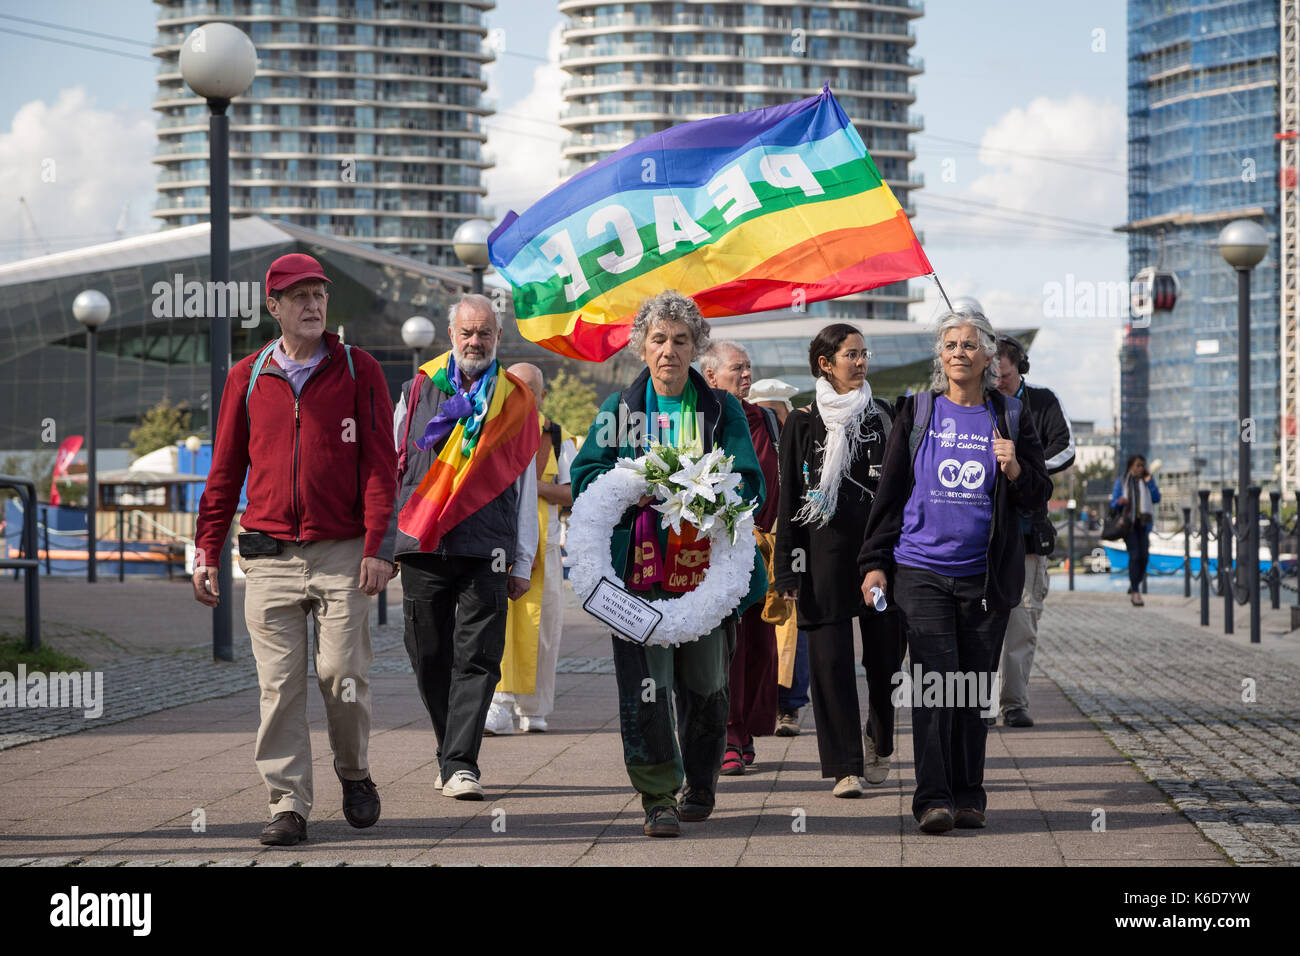 London, UK. 12th Sept, 2017. Anti-war protests continue against DSEi Arms Fair (Defence & Security Equipment International) Stock Photo